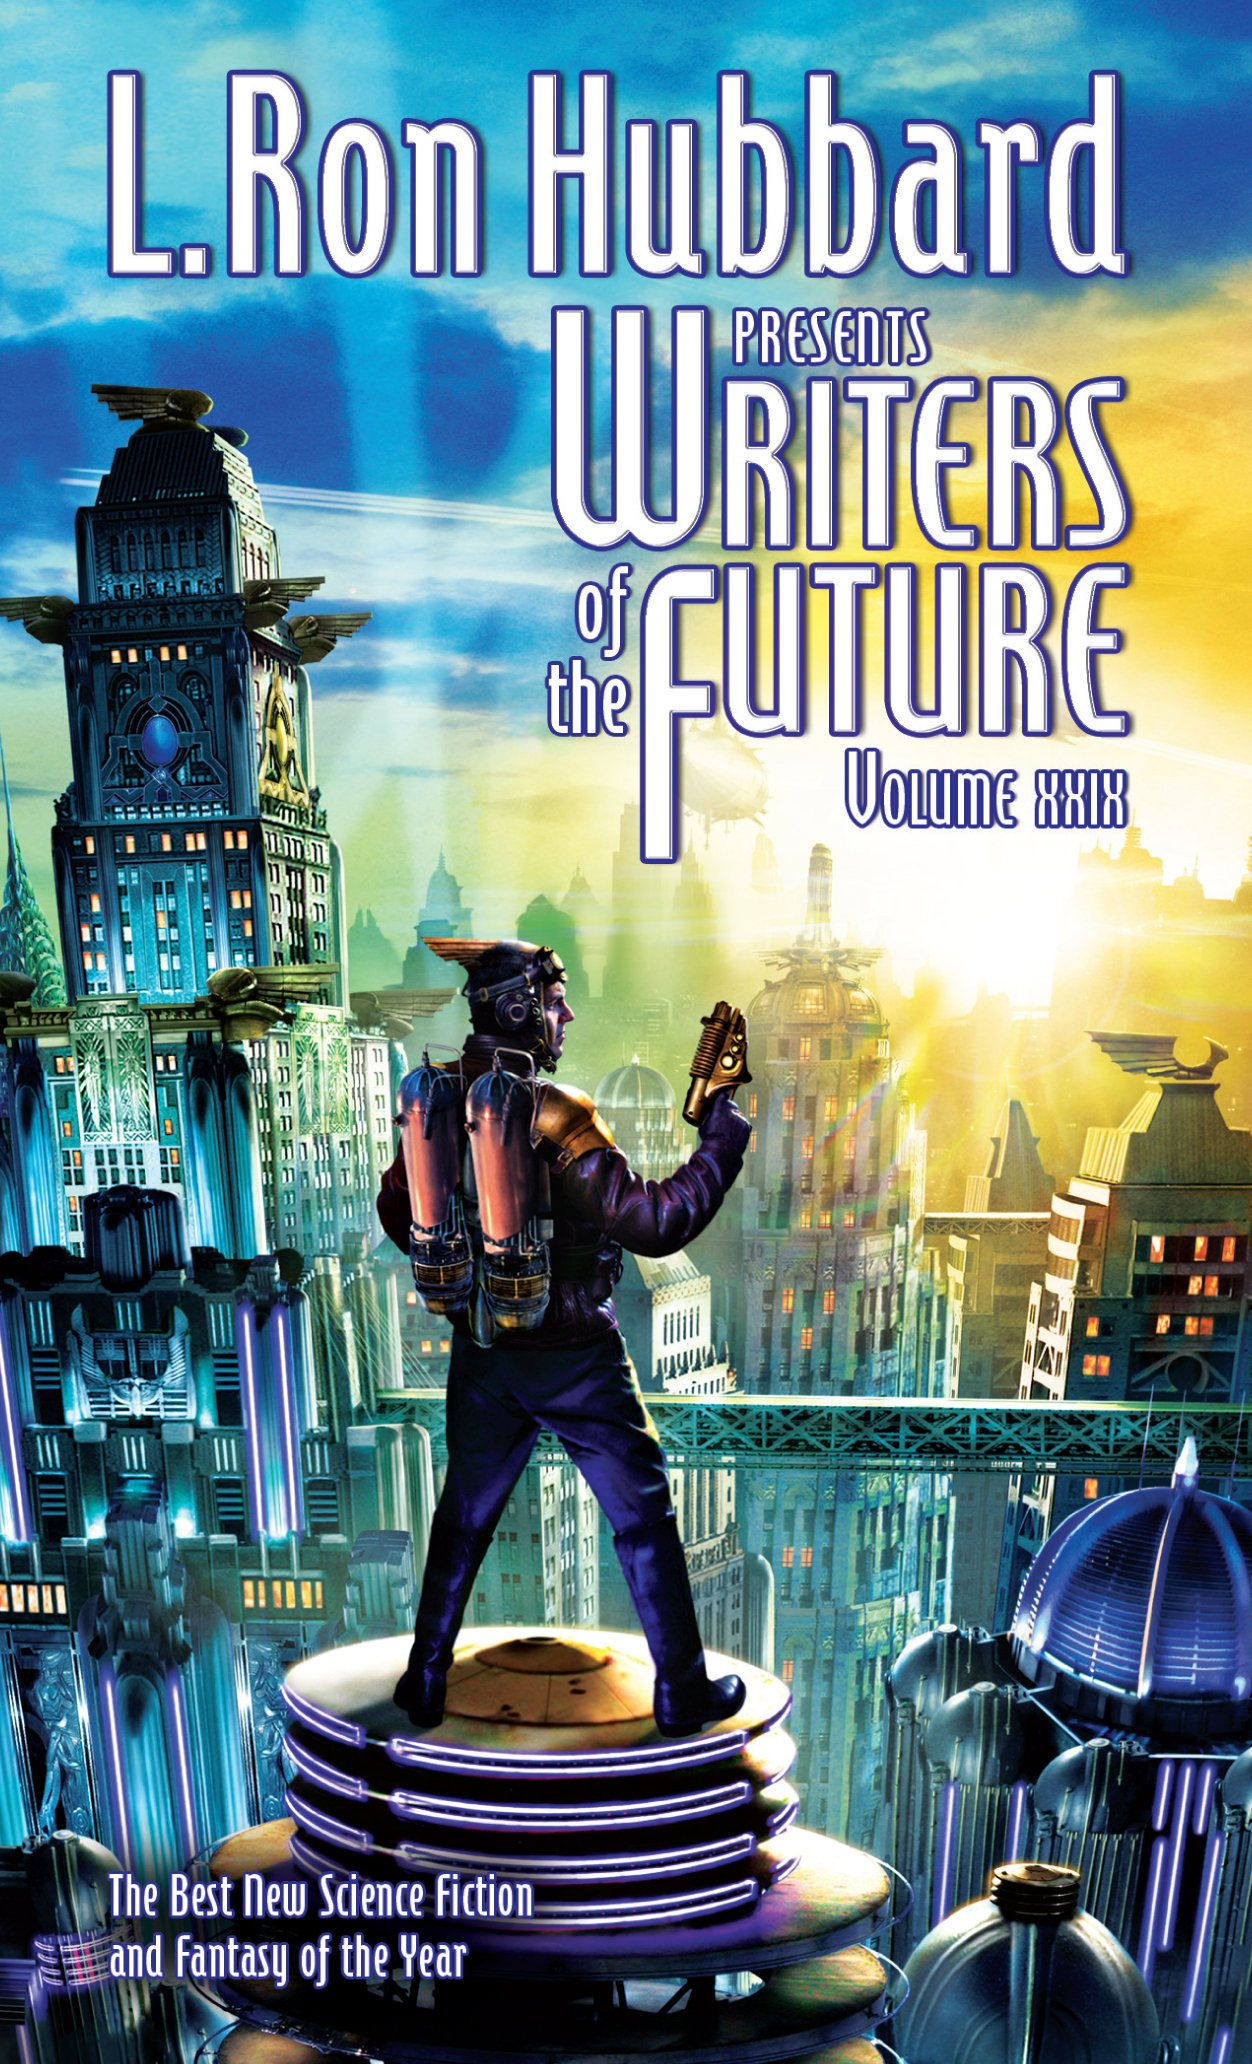 Download Writers of the Future Volume 29 (L. Ron Hubbard Presents Writers of the Future) ebook